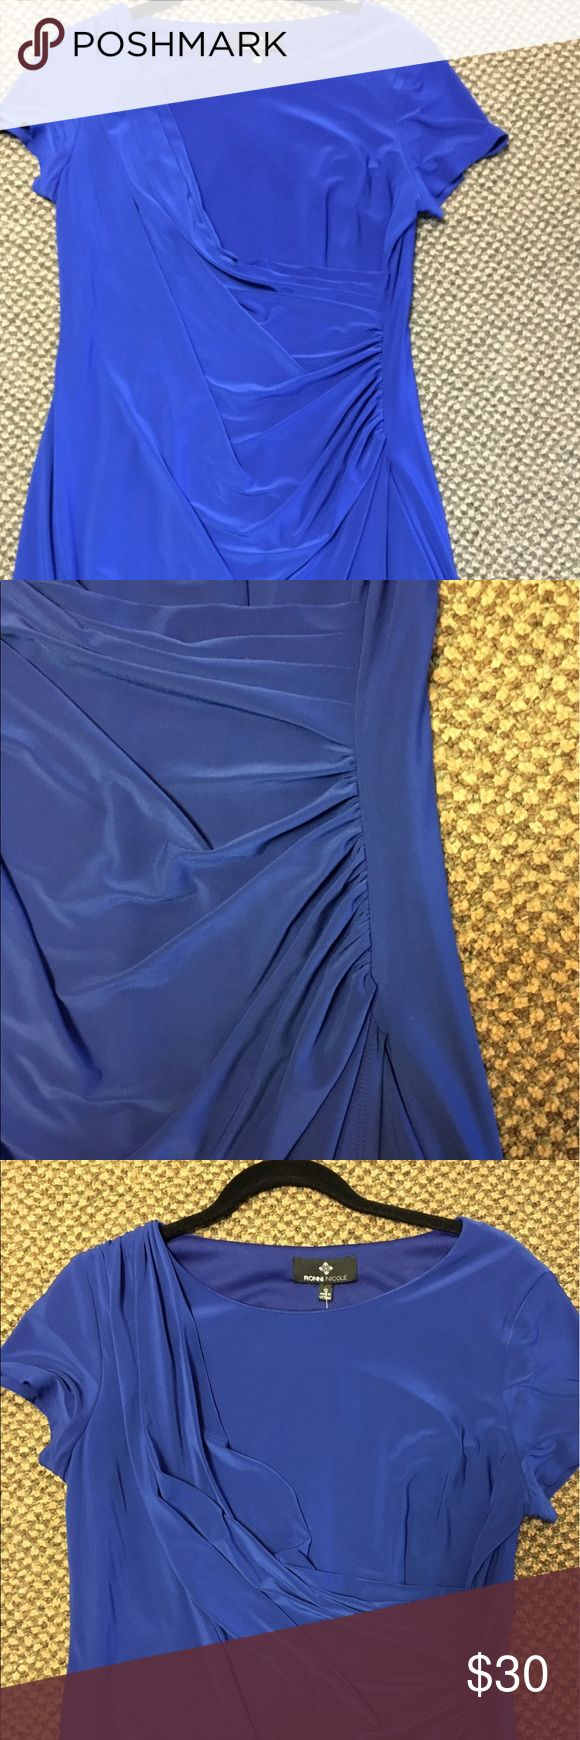 Ronni Nicole Cobalt Blue Knit Faux Wrap Dress 12 Super easy to wear and pack! Short sleeves, almost cap sleeves. Fake wrap dress look. Just pull over head. Fully lined. Stretch knit. Excellent condition. Ronni Nicole Dresses